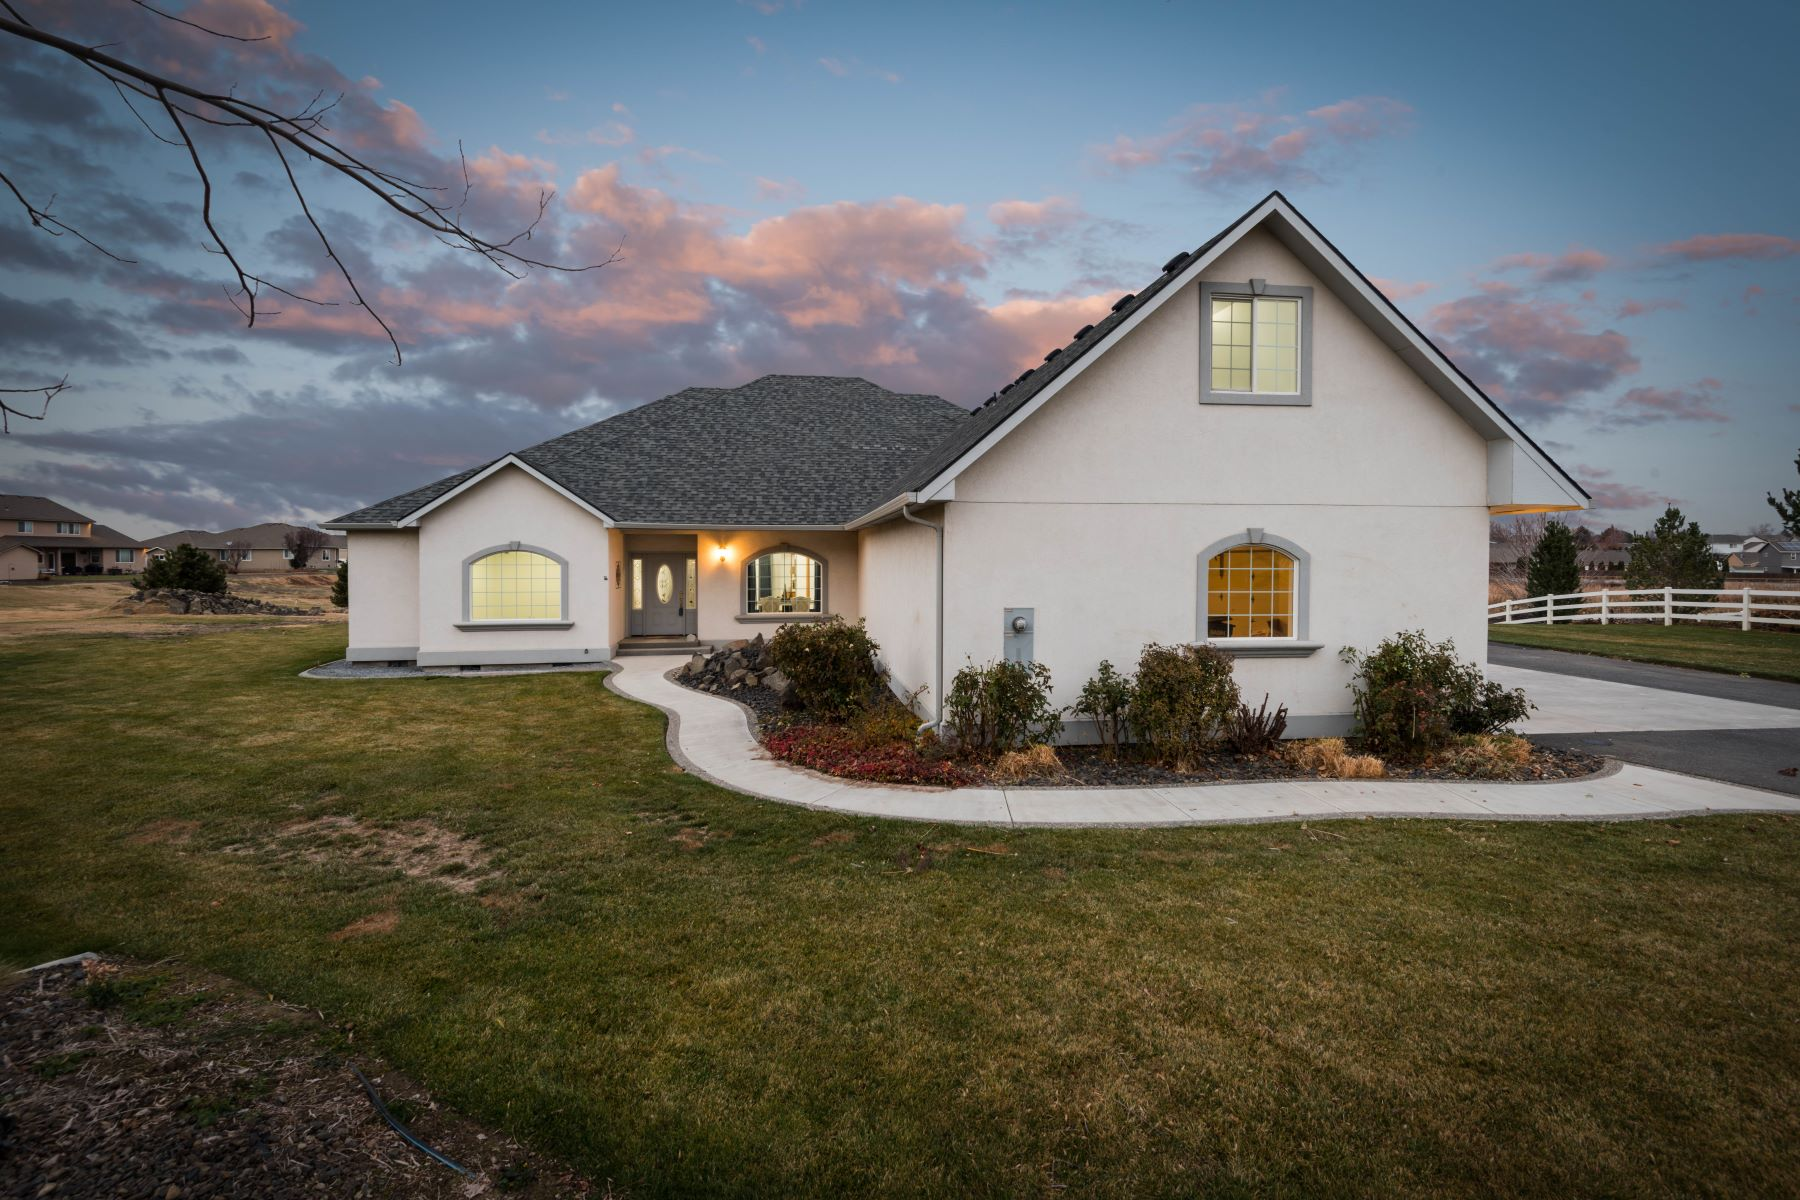 Single Family Homes for Sale at Spacious Rambler with Room for a Horse 5604 Glenbrook Loop Richland, Washington 99353 United States